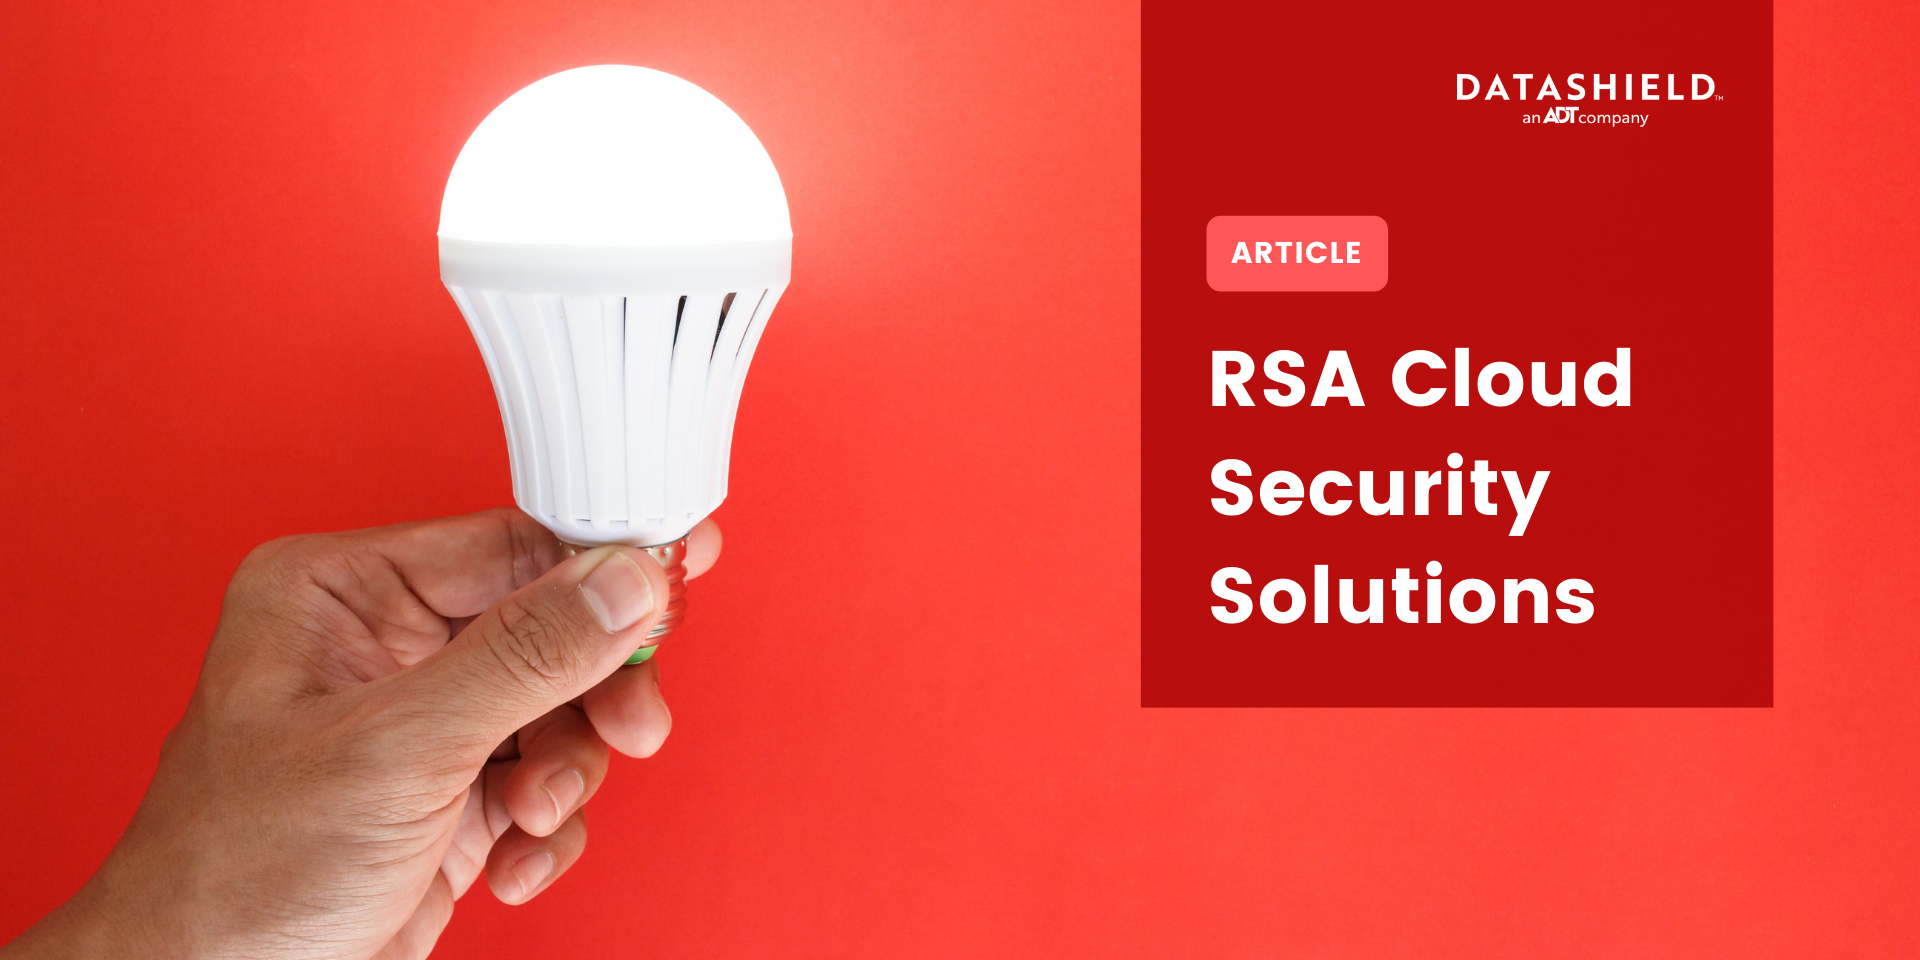 rsa cloud security solutions